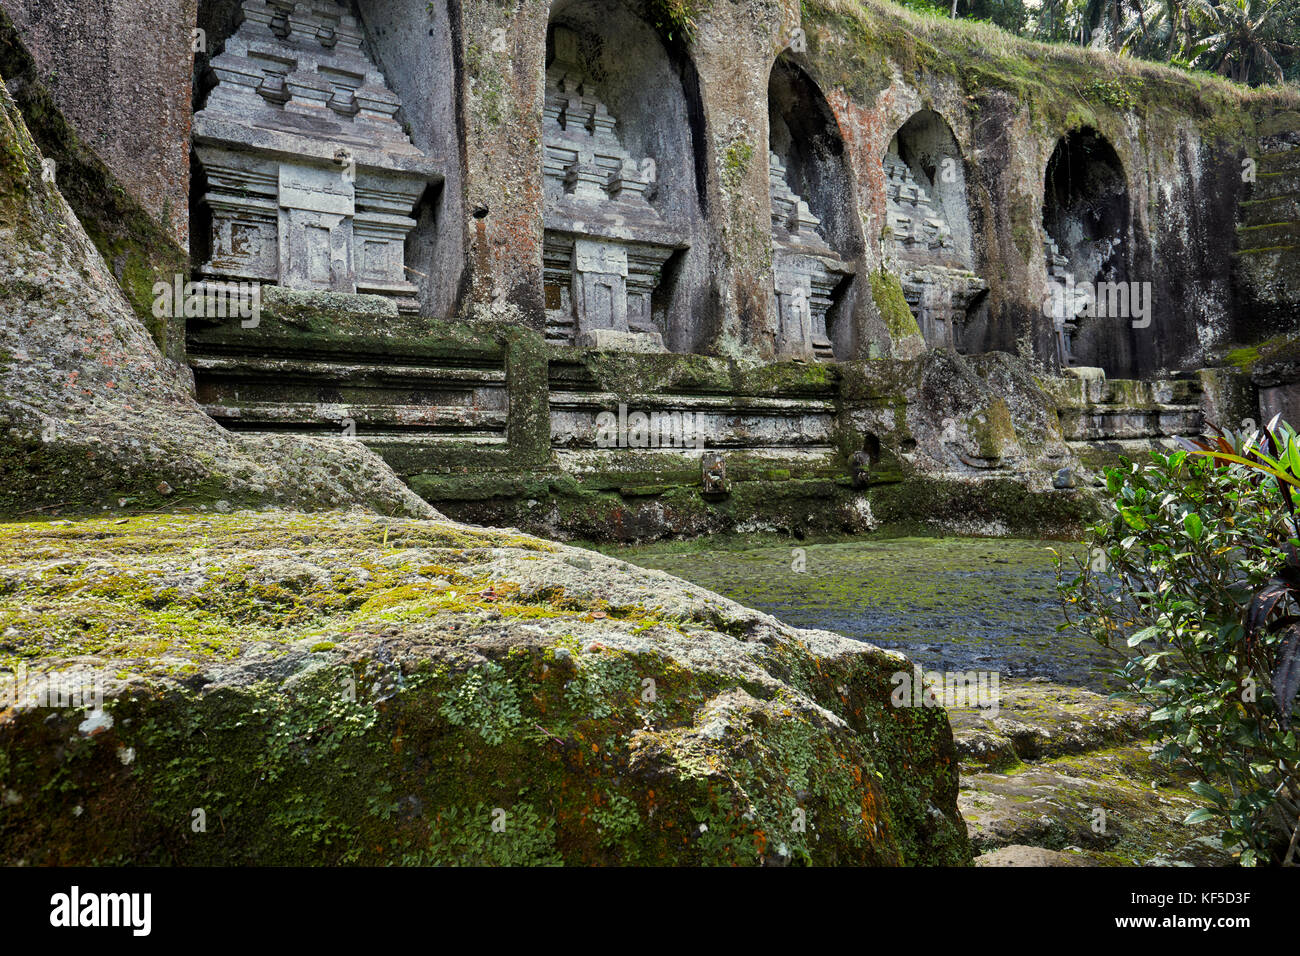 Rock cut shrines in Gunung Kawi, 11th-century temple and funerary complex. Tampaksiring, Bali, Indonesia. - Stock Image